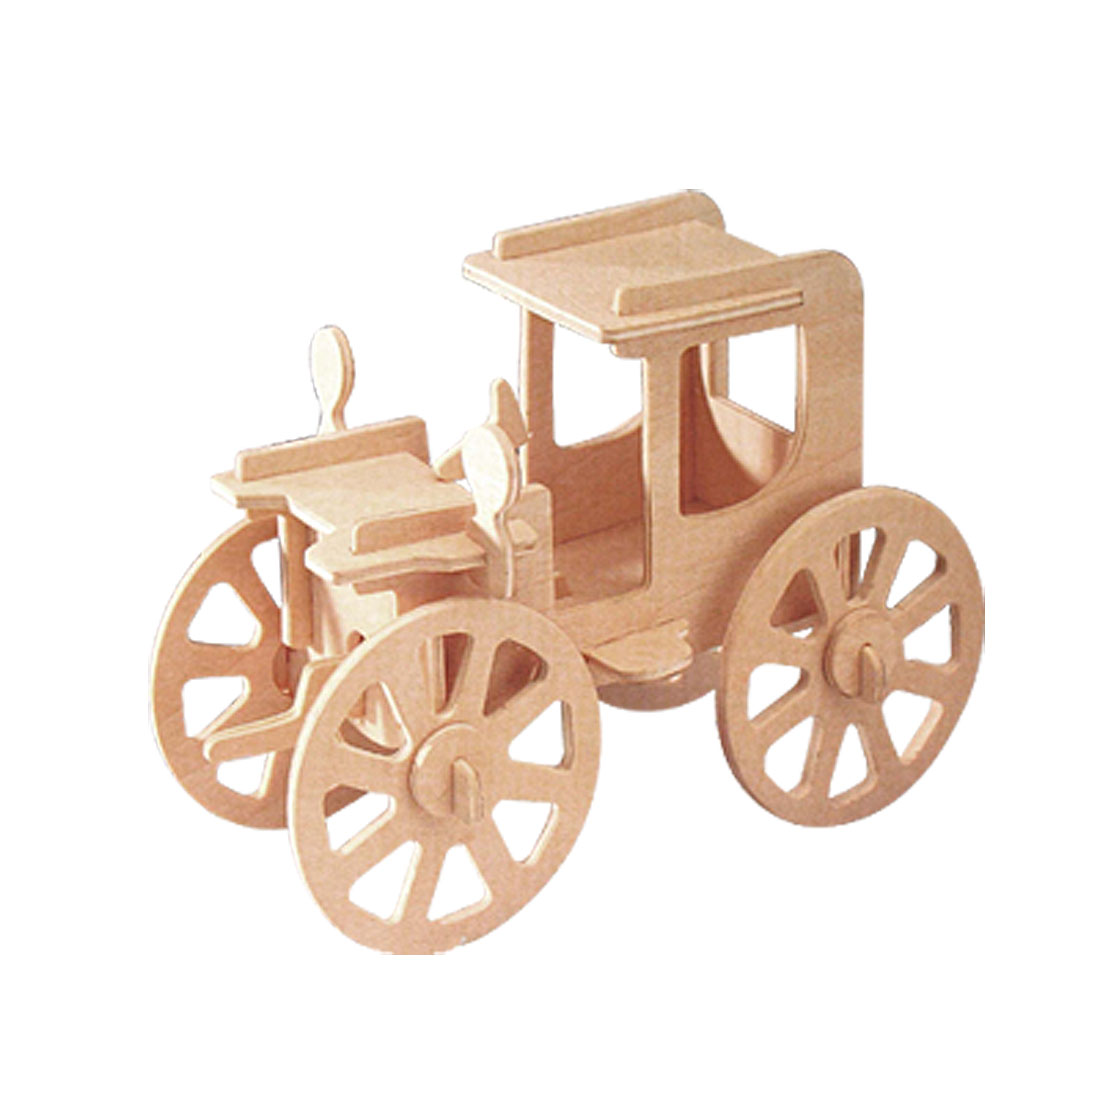 Toy - Antique Automobile Woodcraft Construction Kit Model Puzzle for DIY Lover